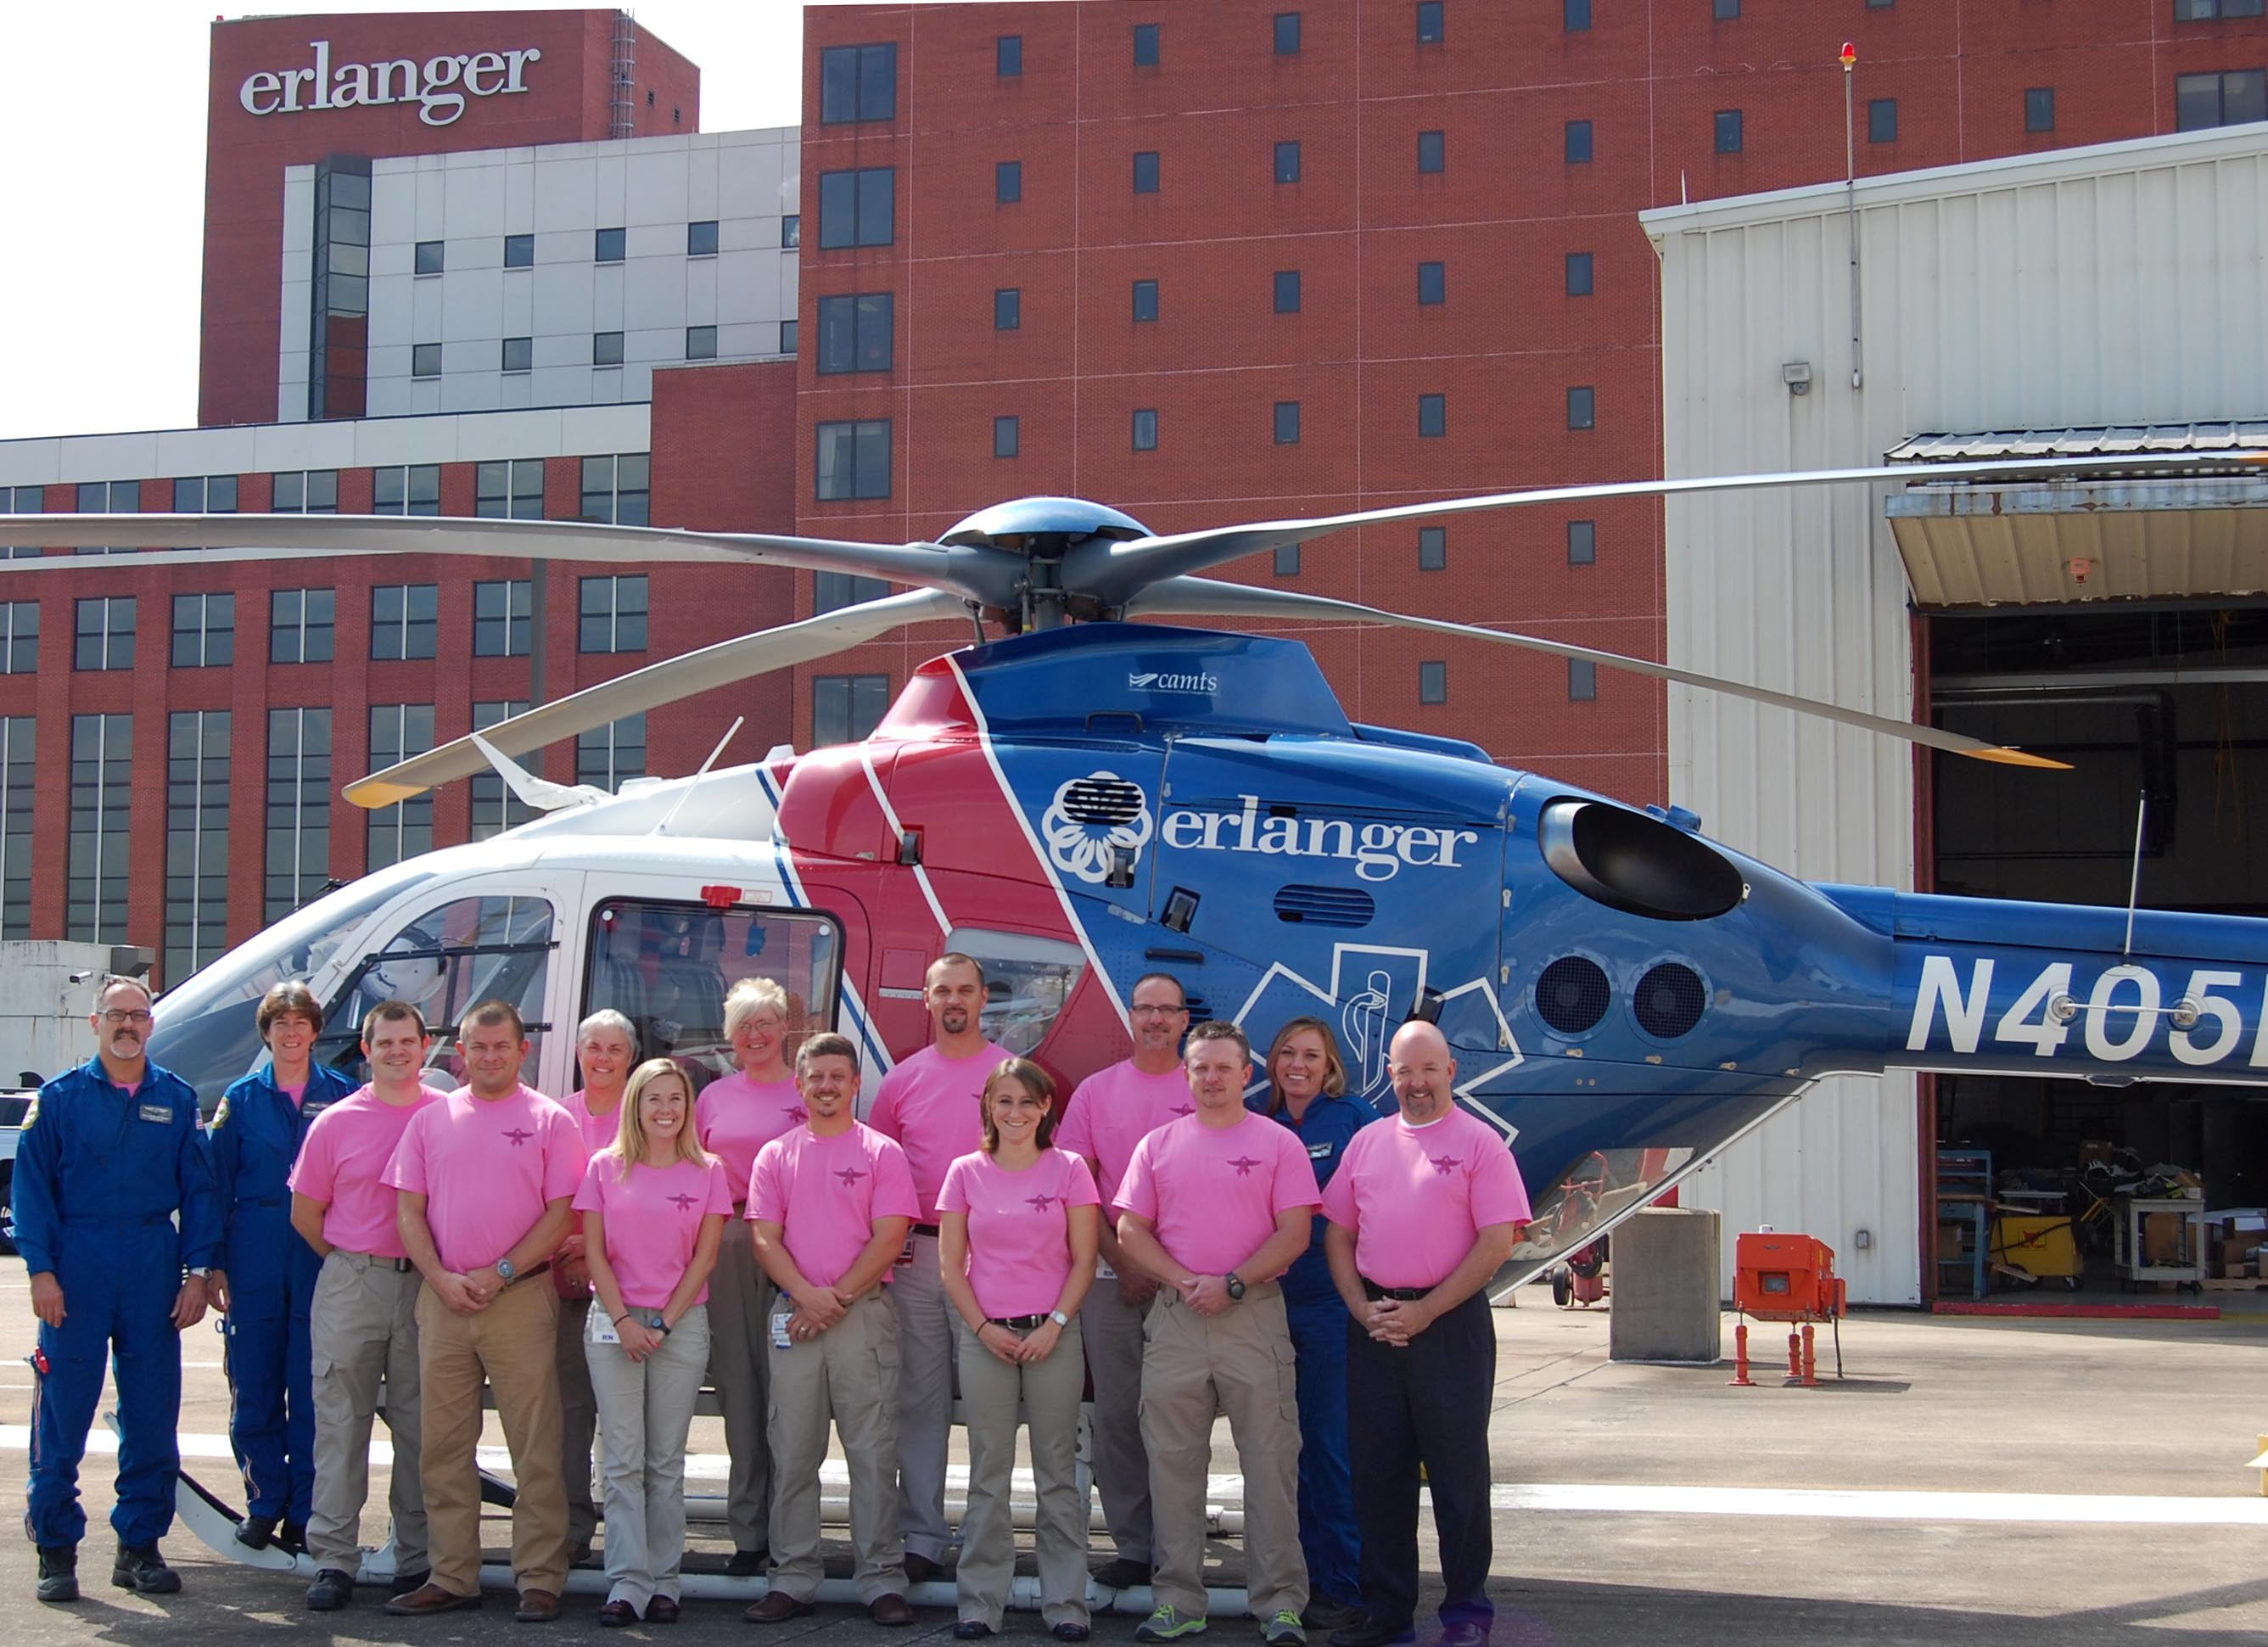 Erlanger's LIFE FORCE crew goes pink for Breast Cancer Awareness Month